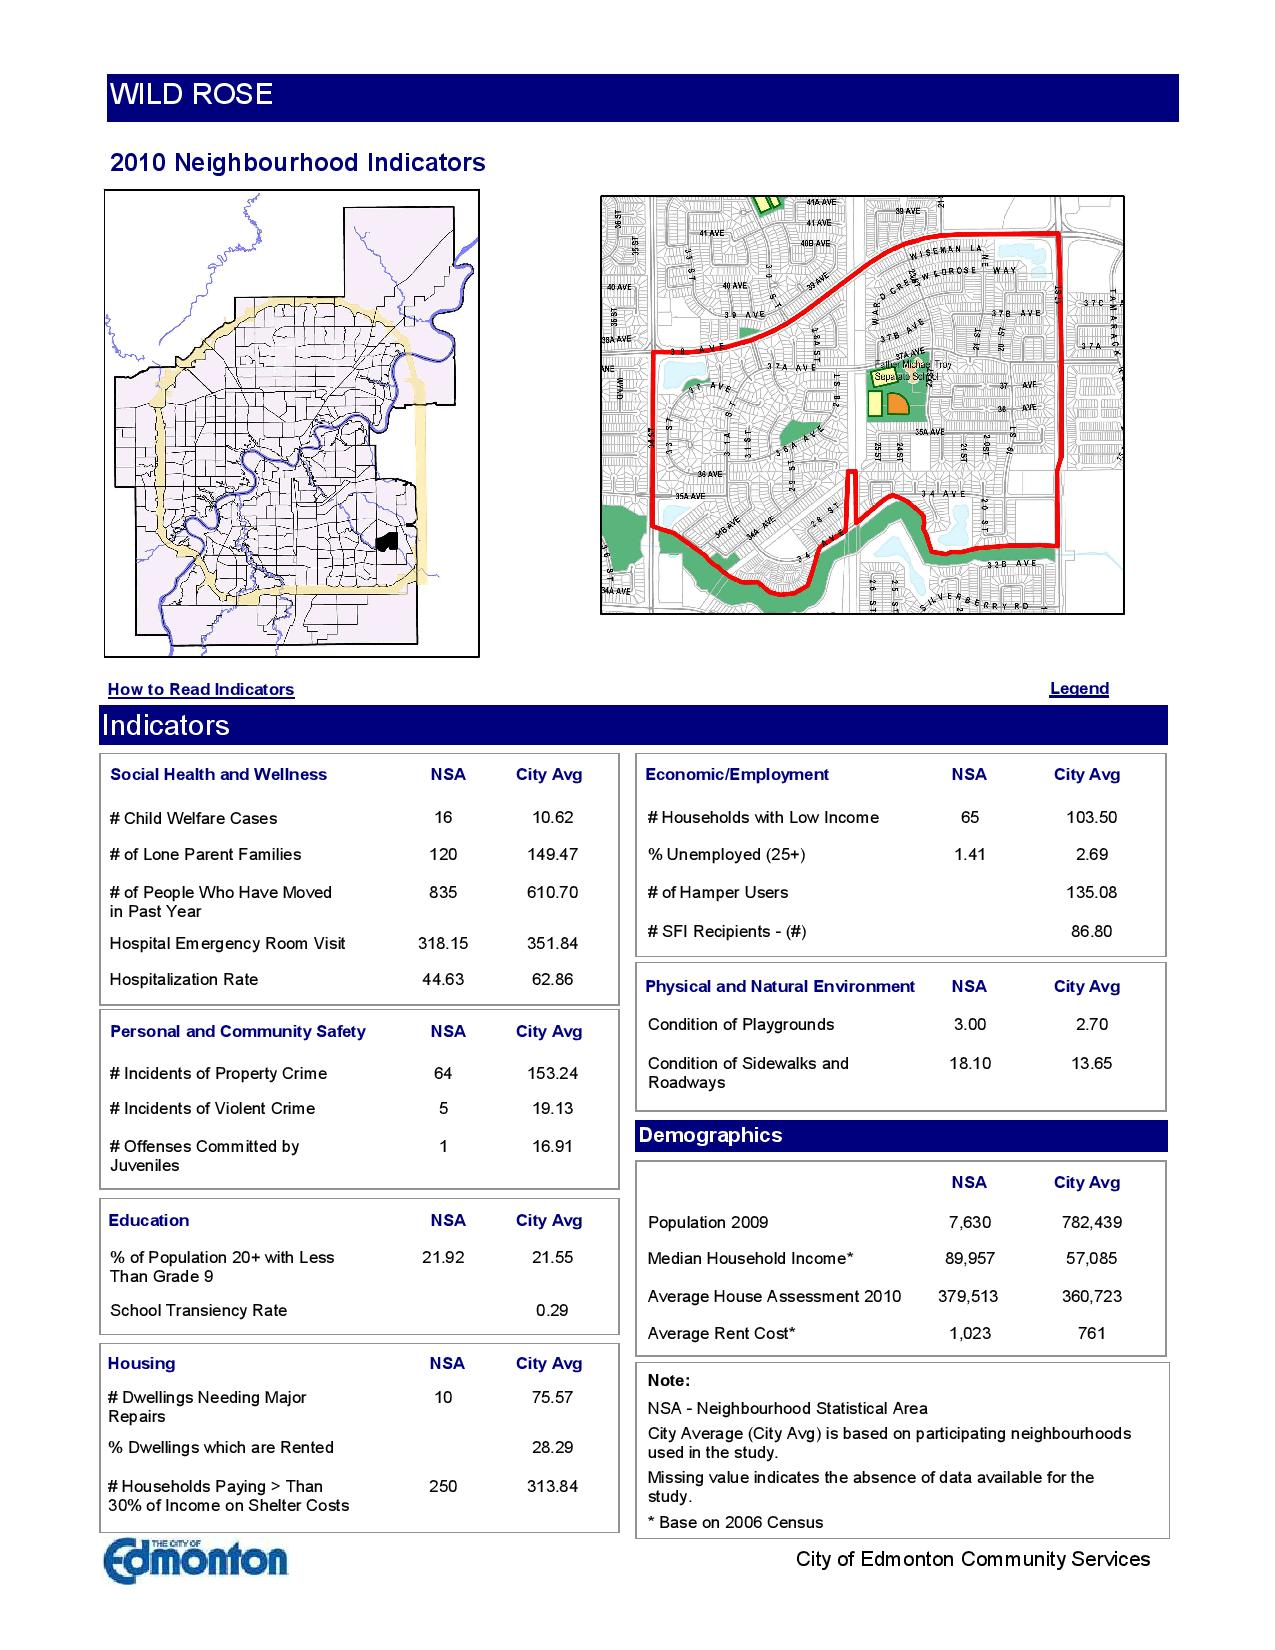 Wild rose Edmonton neighbourhood stats